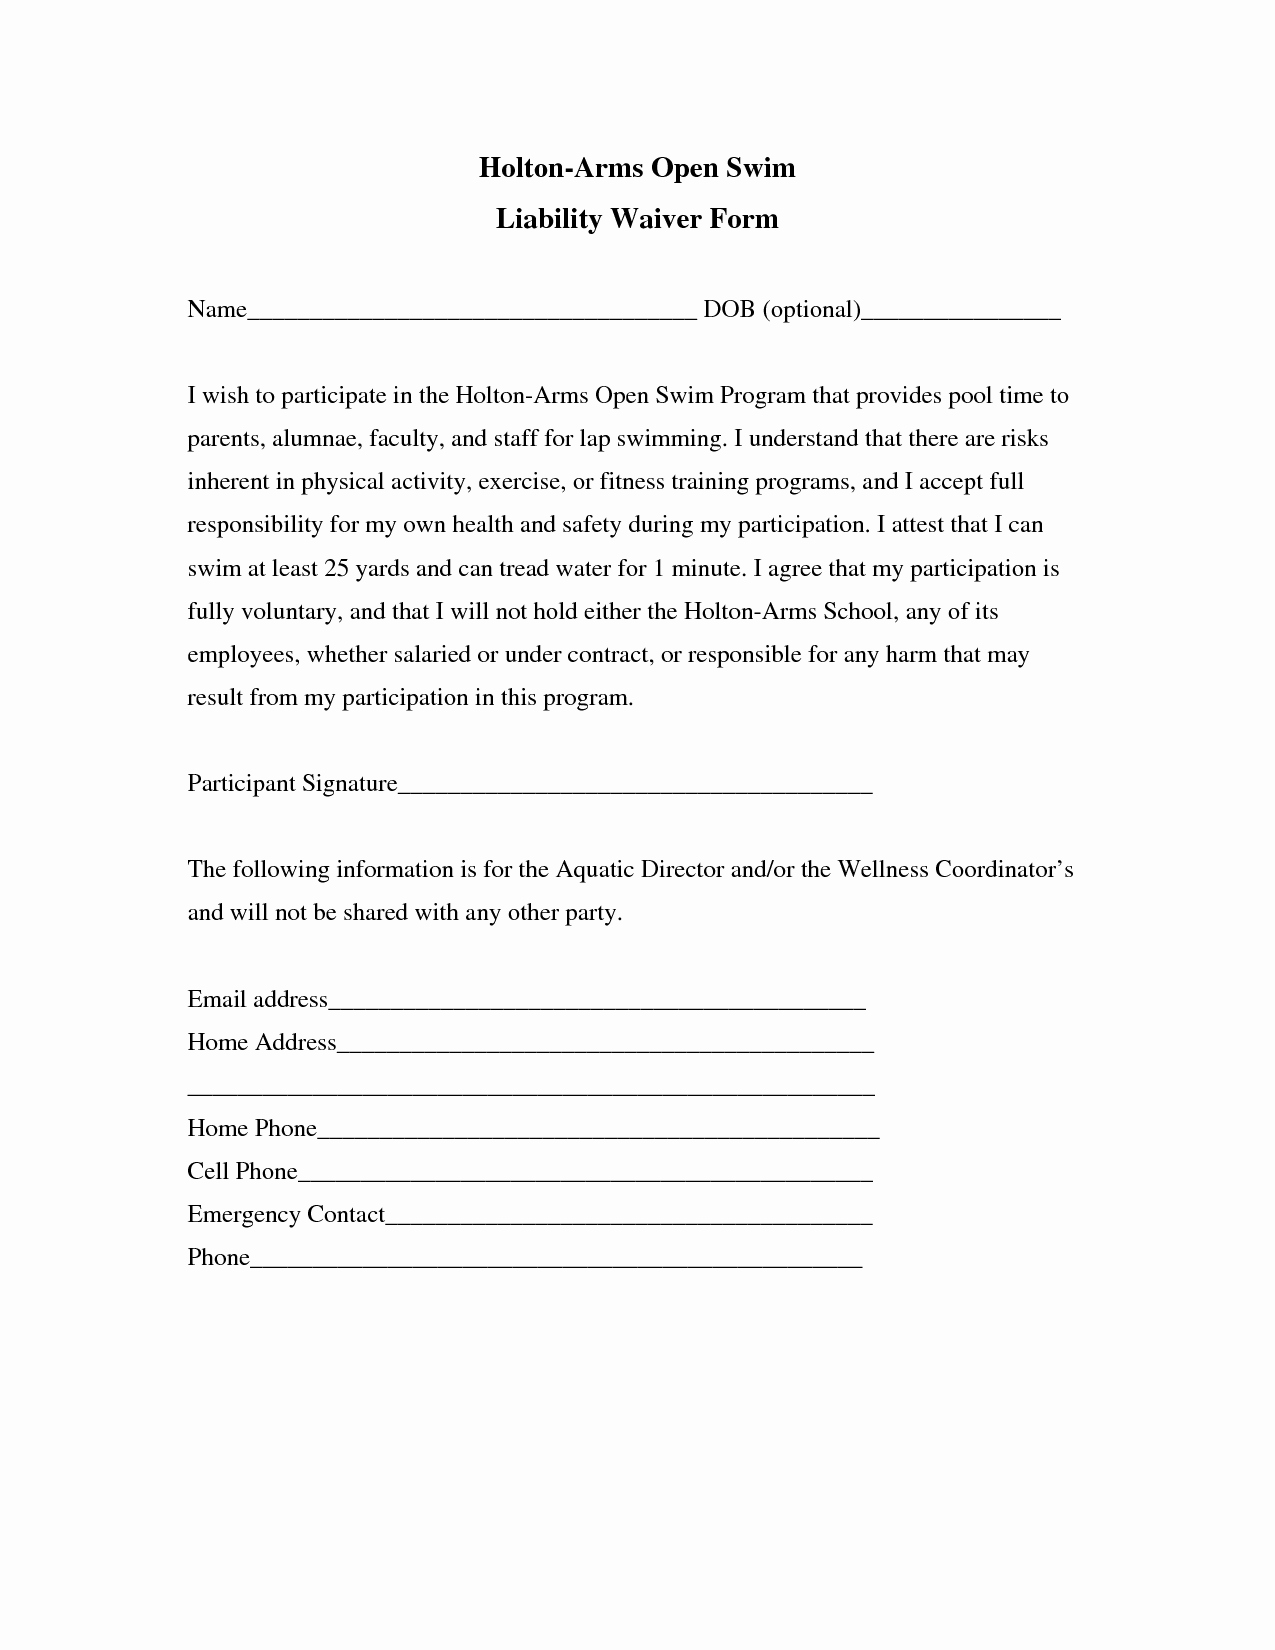 Release Of Liability form Pdf Awesome Liability Insurance Liability Insurance Waiver Template